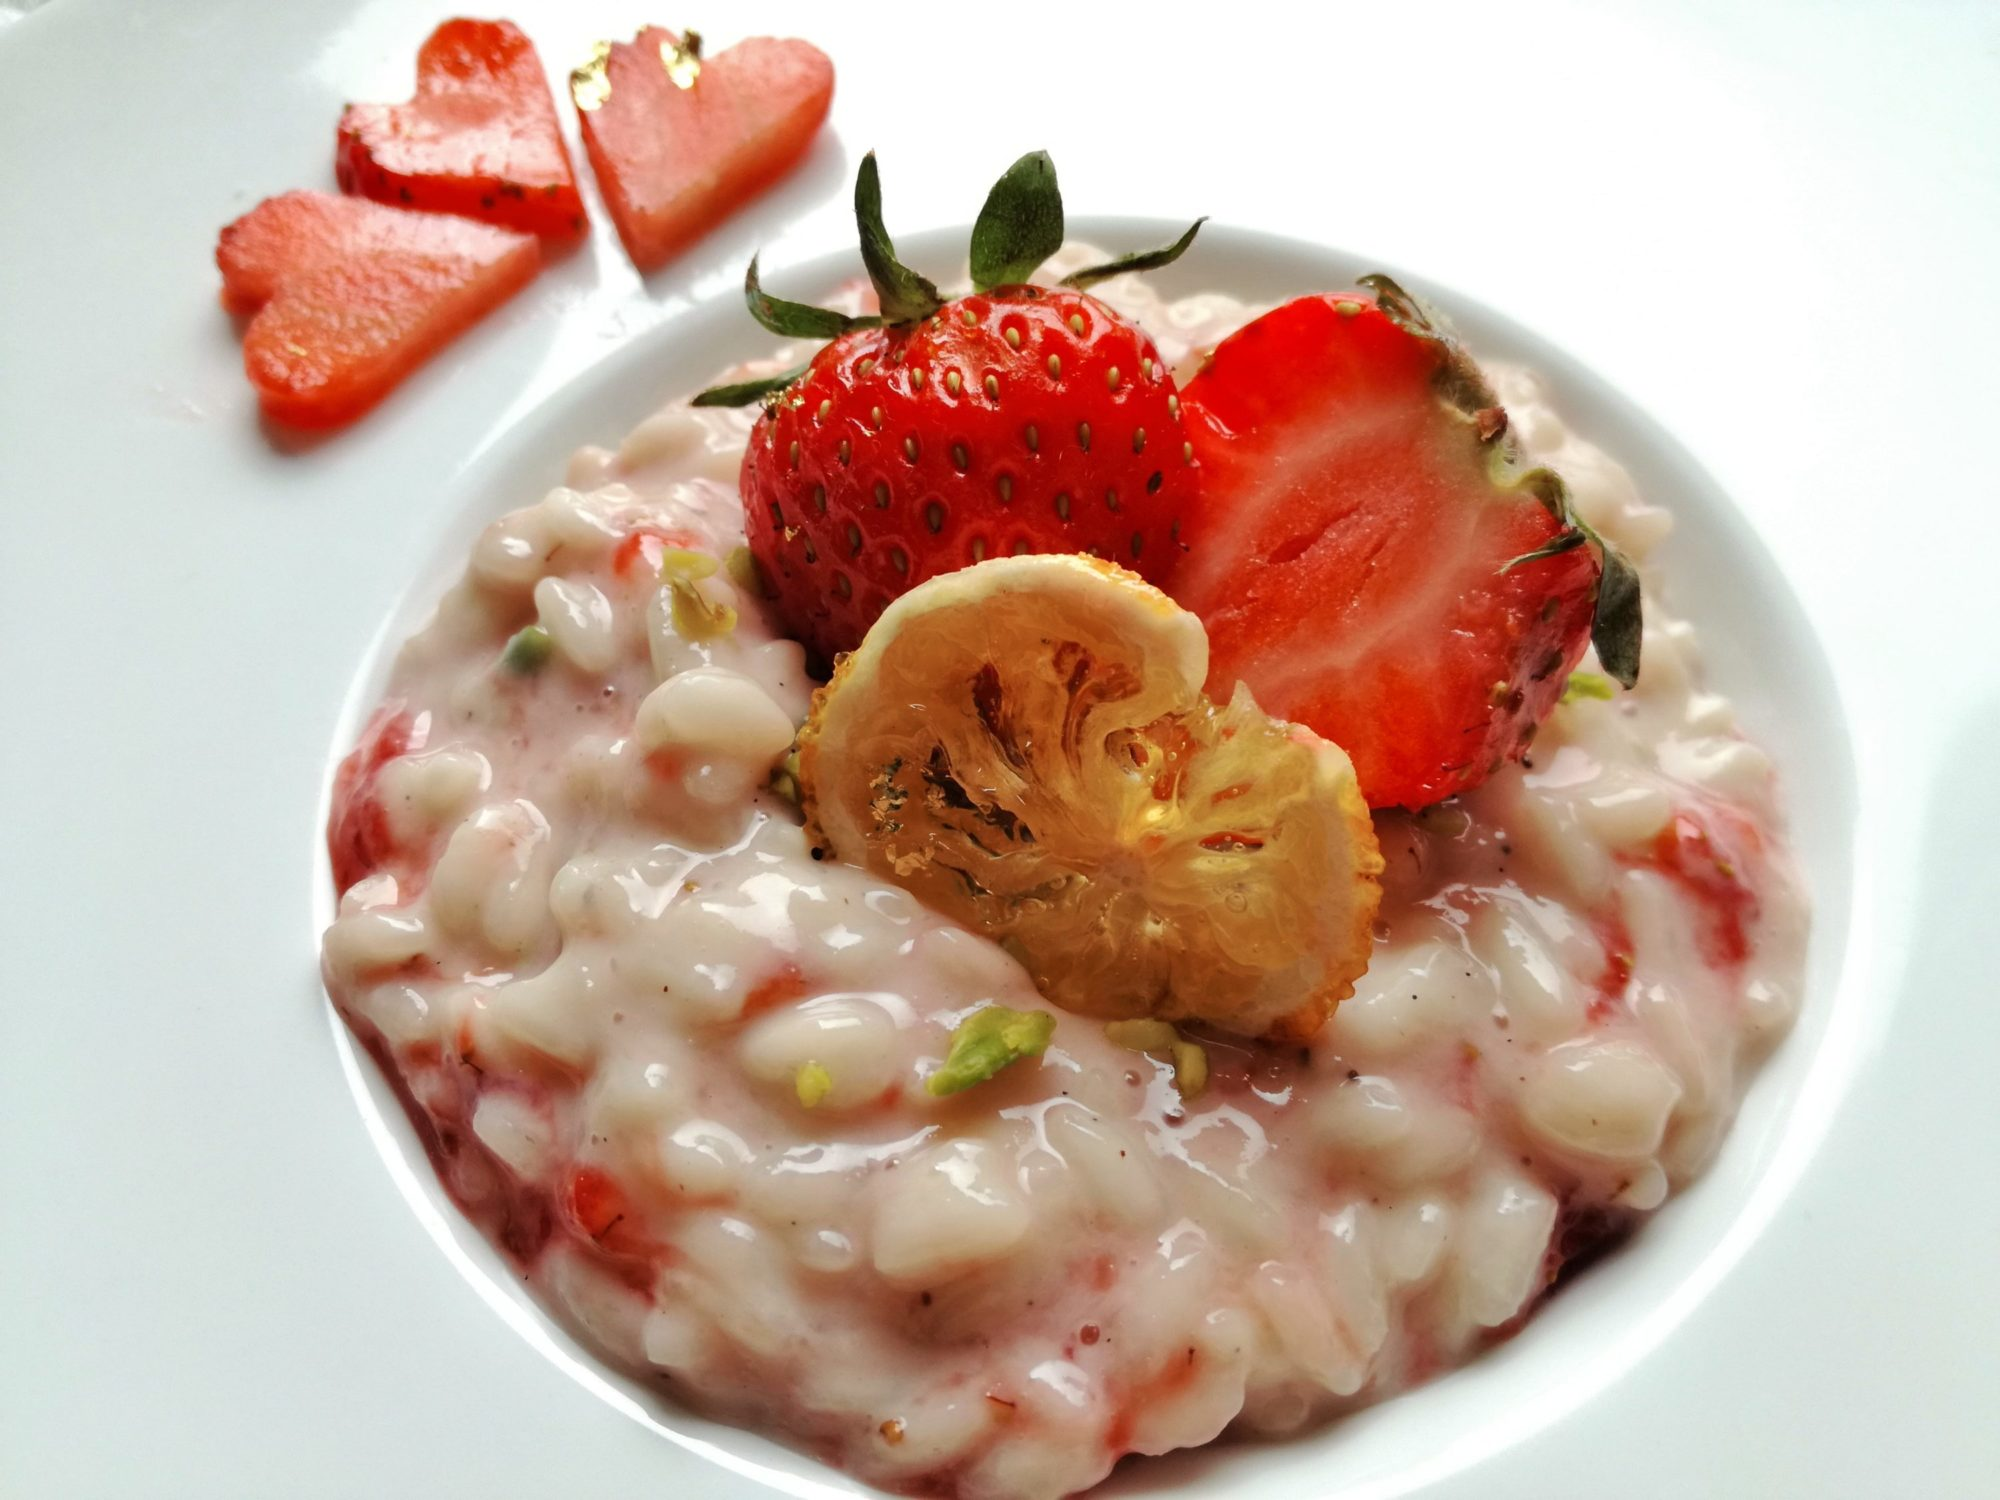 Risotto dolce alle fragole